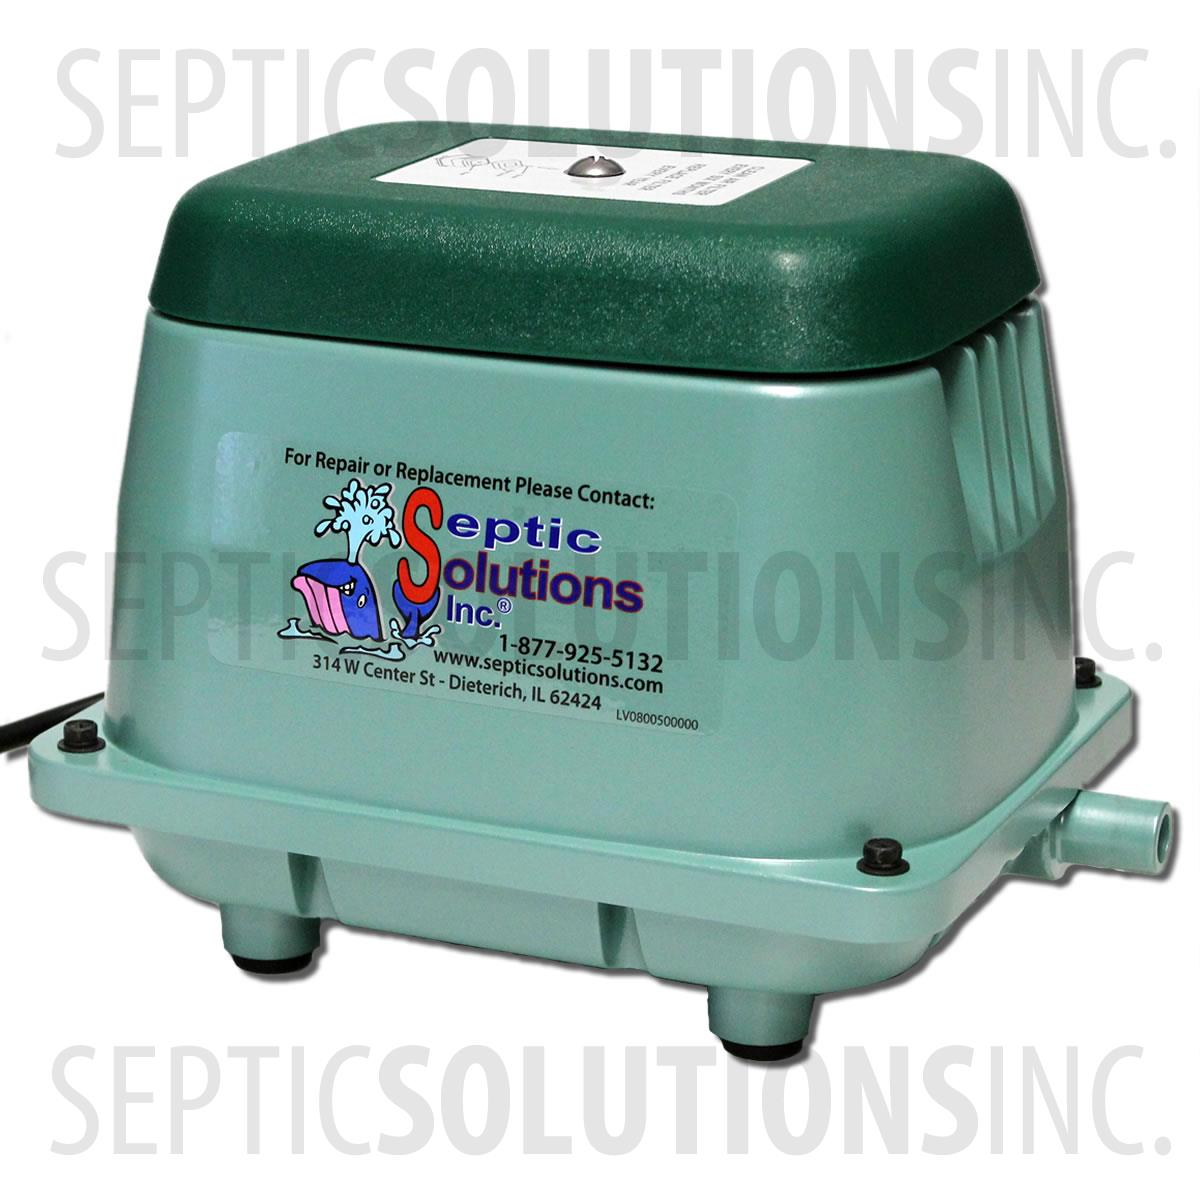 CS500_1?w=600 clearstream aerobic septic system air pumps and repair parts  at cos-gaming.co